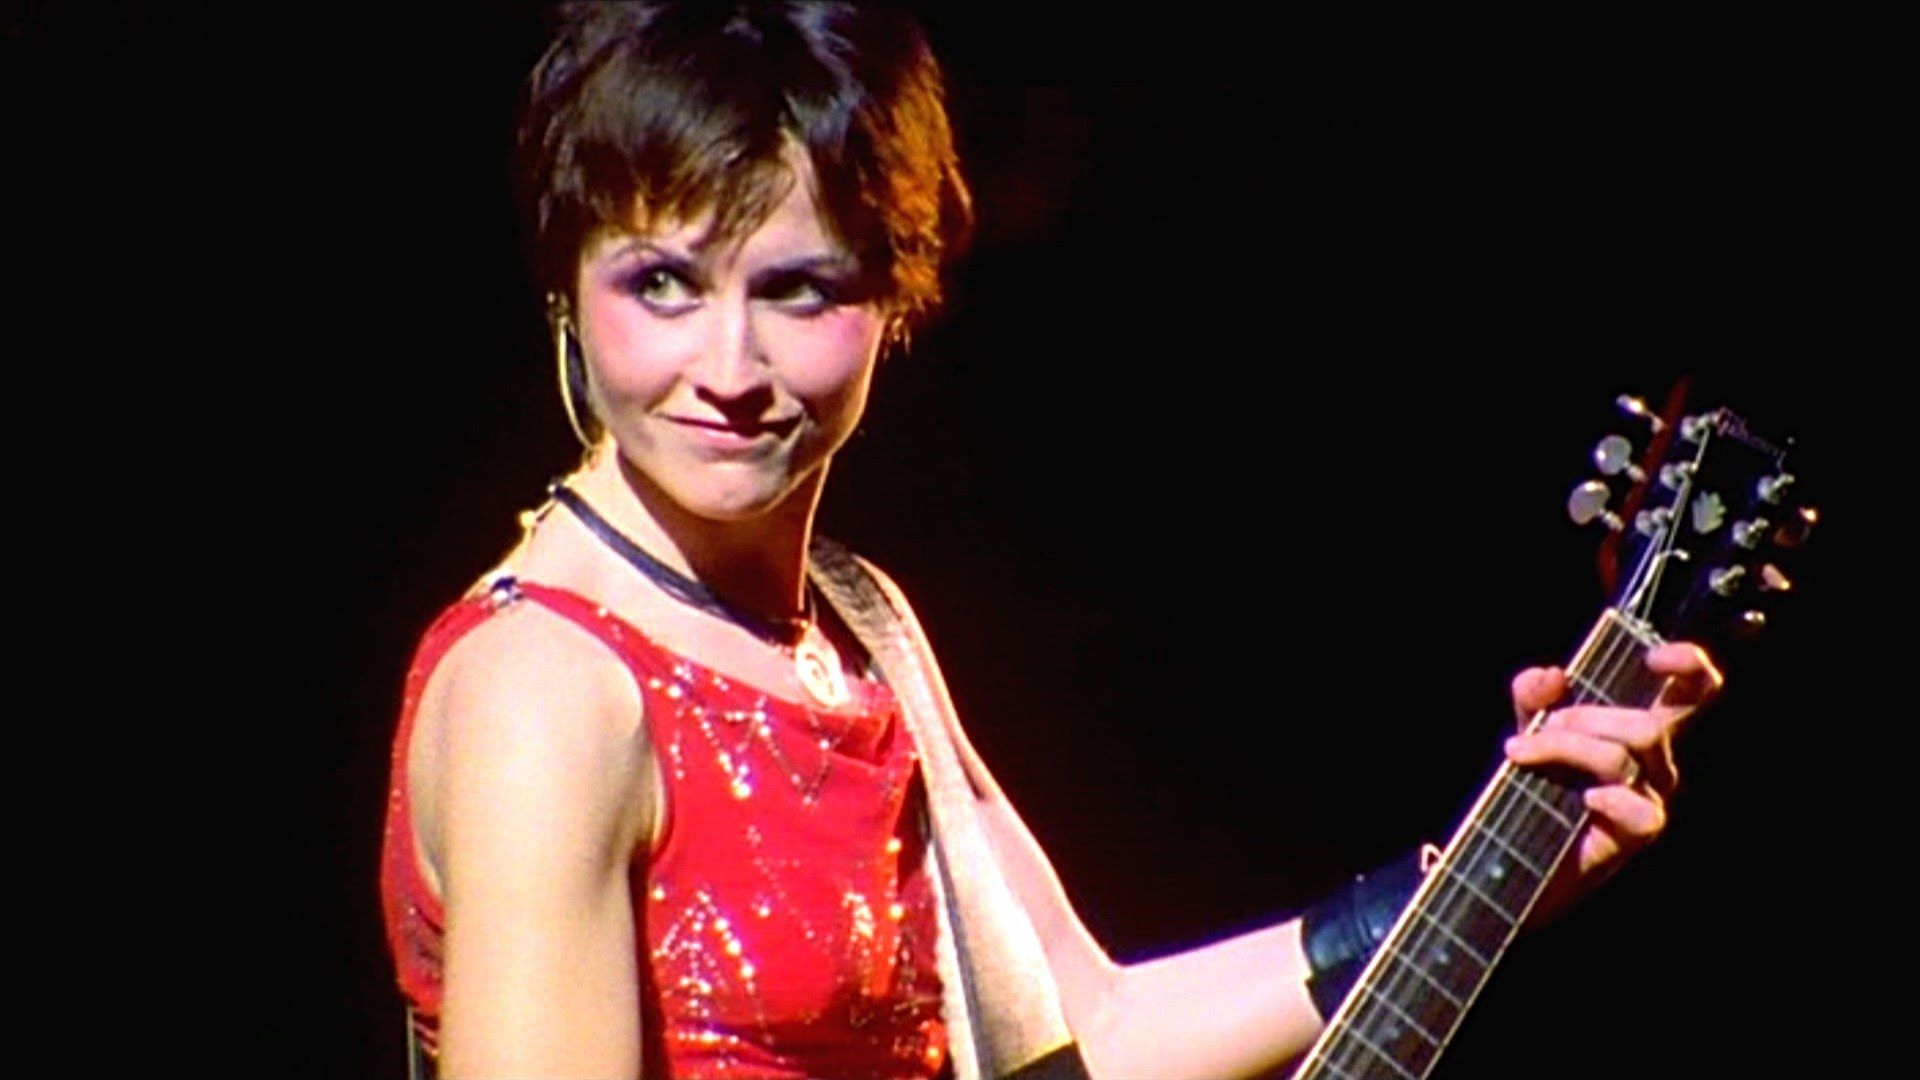 The Cranberries - Zombie 1999 Live Video - YouTube